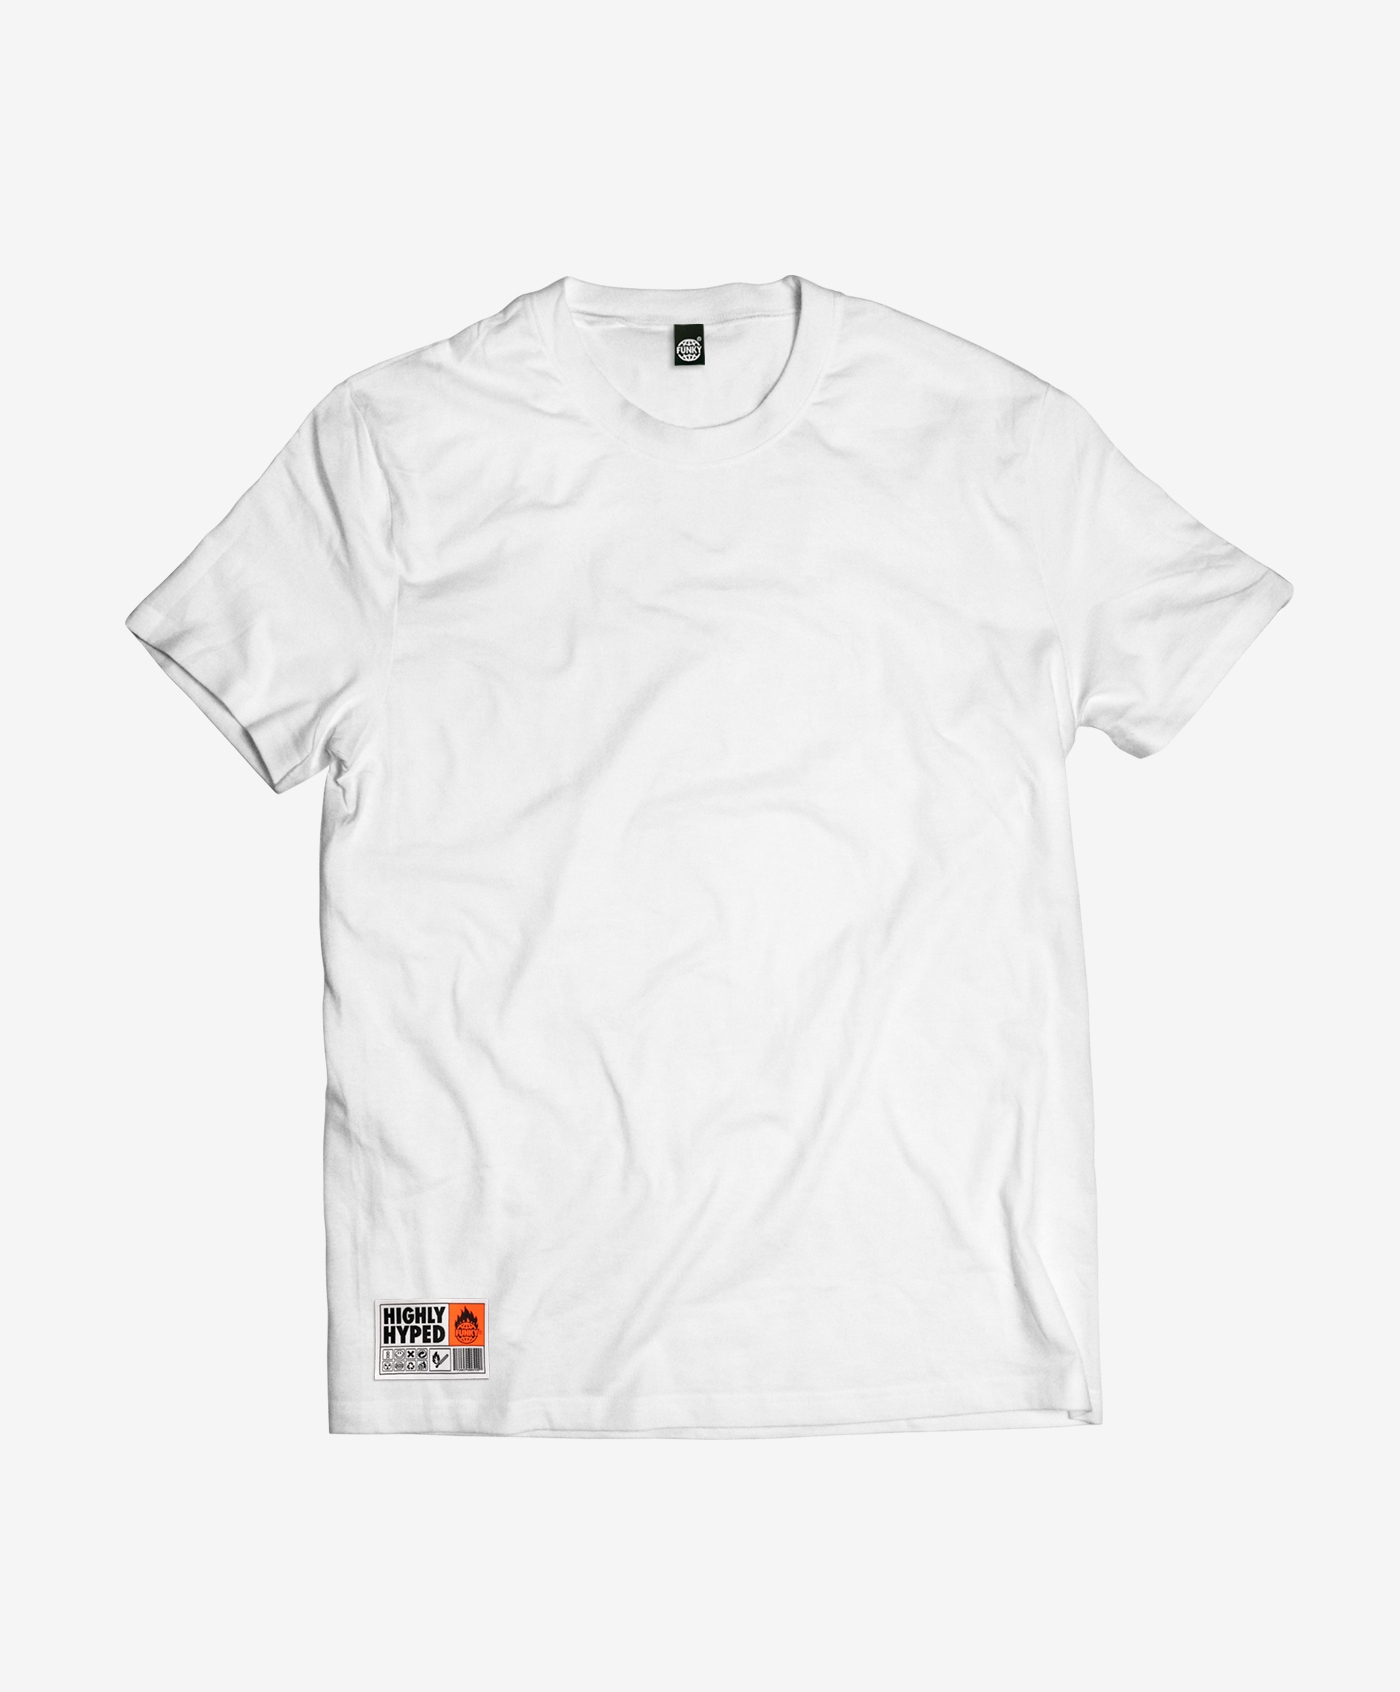 funky-hype-tee-white-front